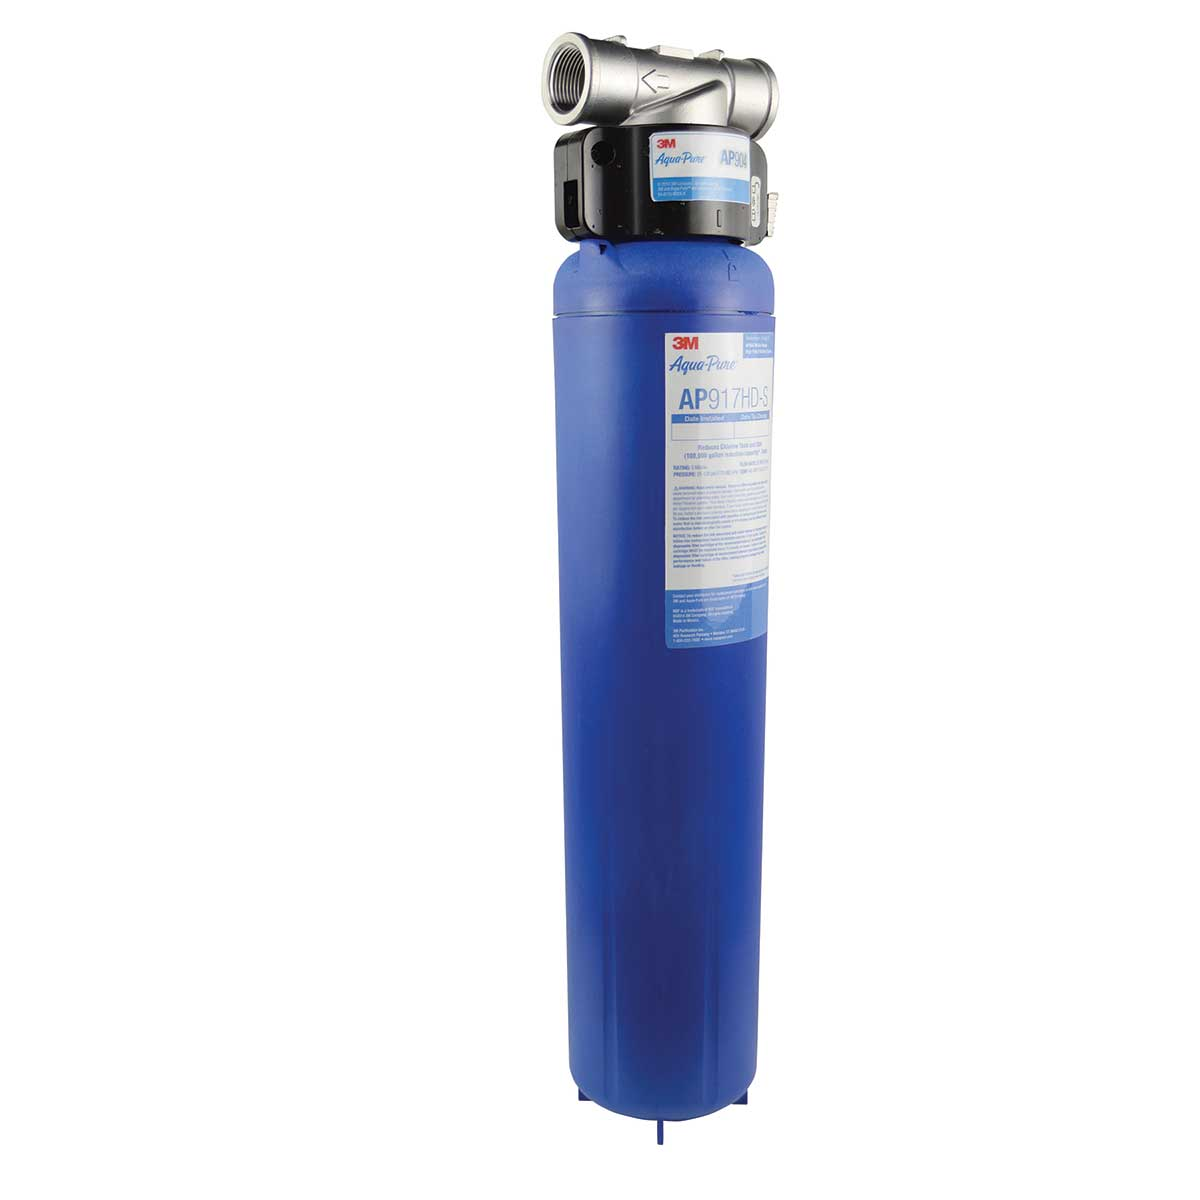 3M™ Aqua-Pure™ AP900 Series Whole House Water Filtration System AP904, 5621104, Sanitary Quick-Change